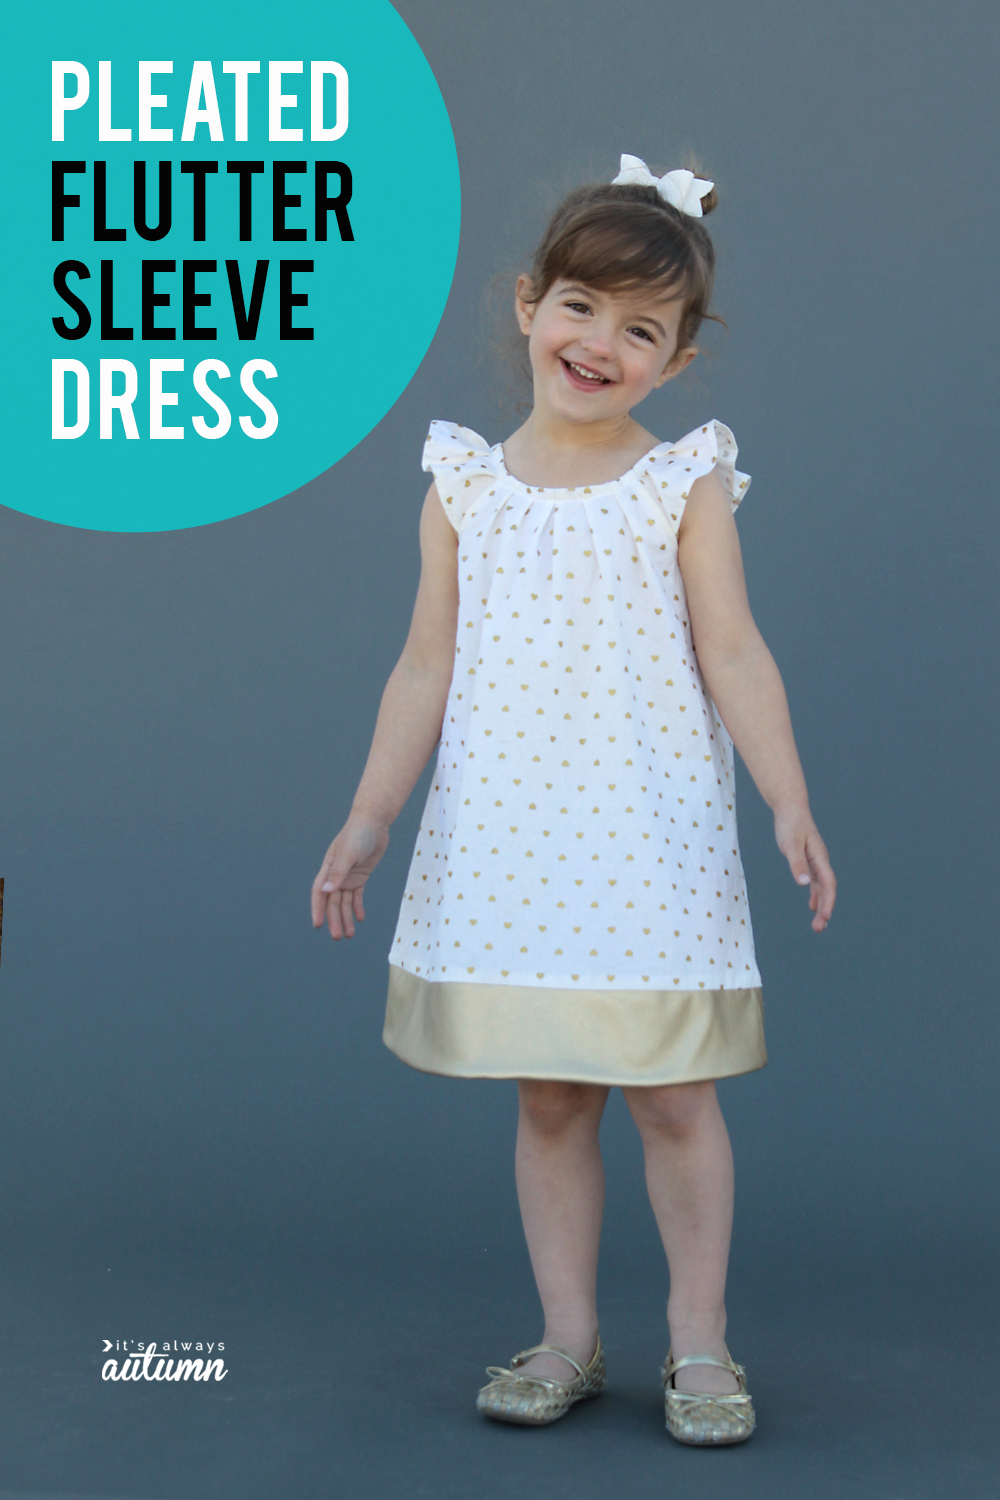 Click through for the sewing pattern for this cute girls pleated flutter sleeve dress in size 4T.